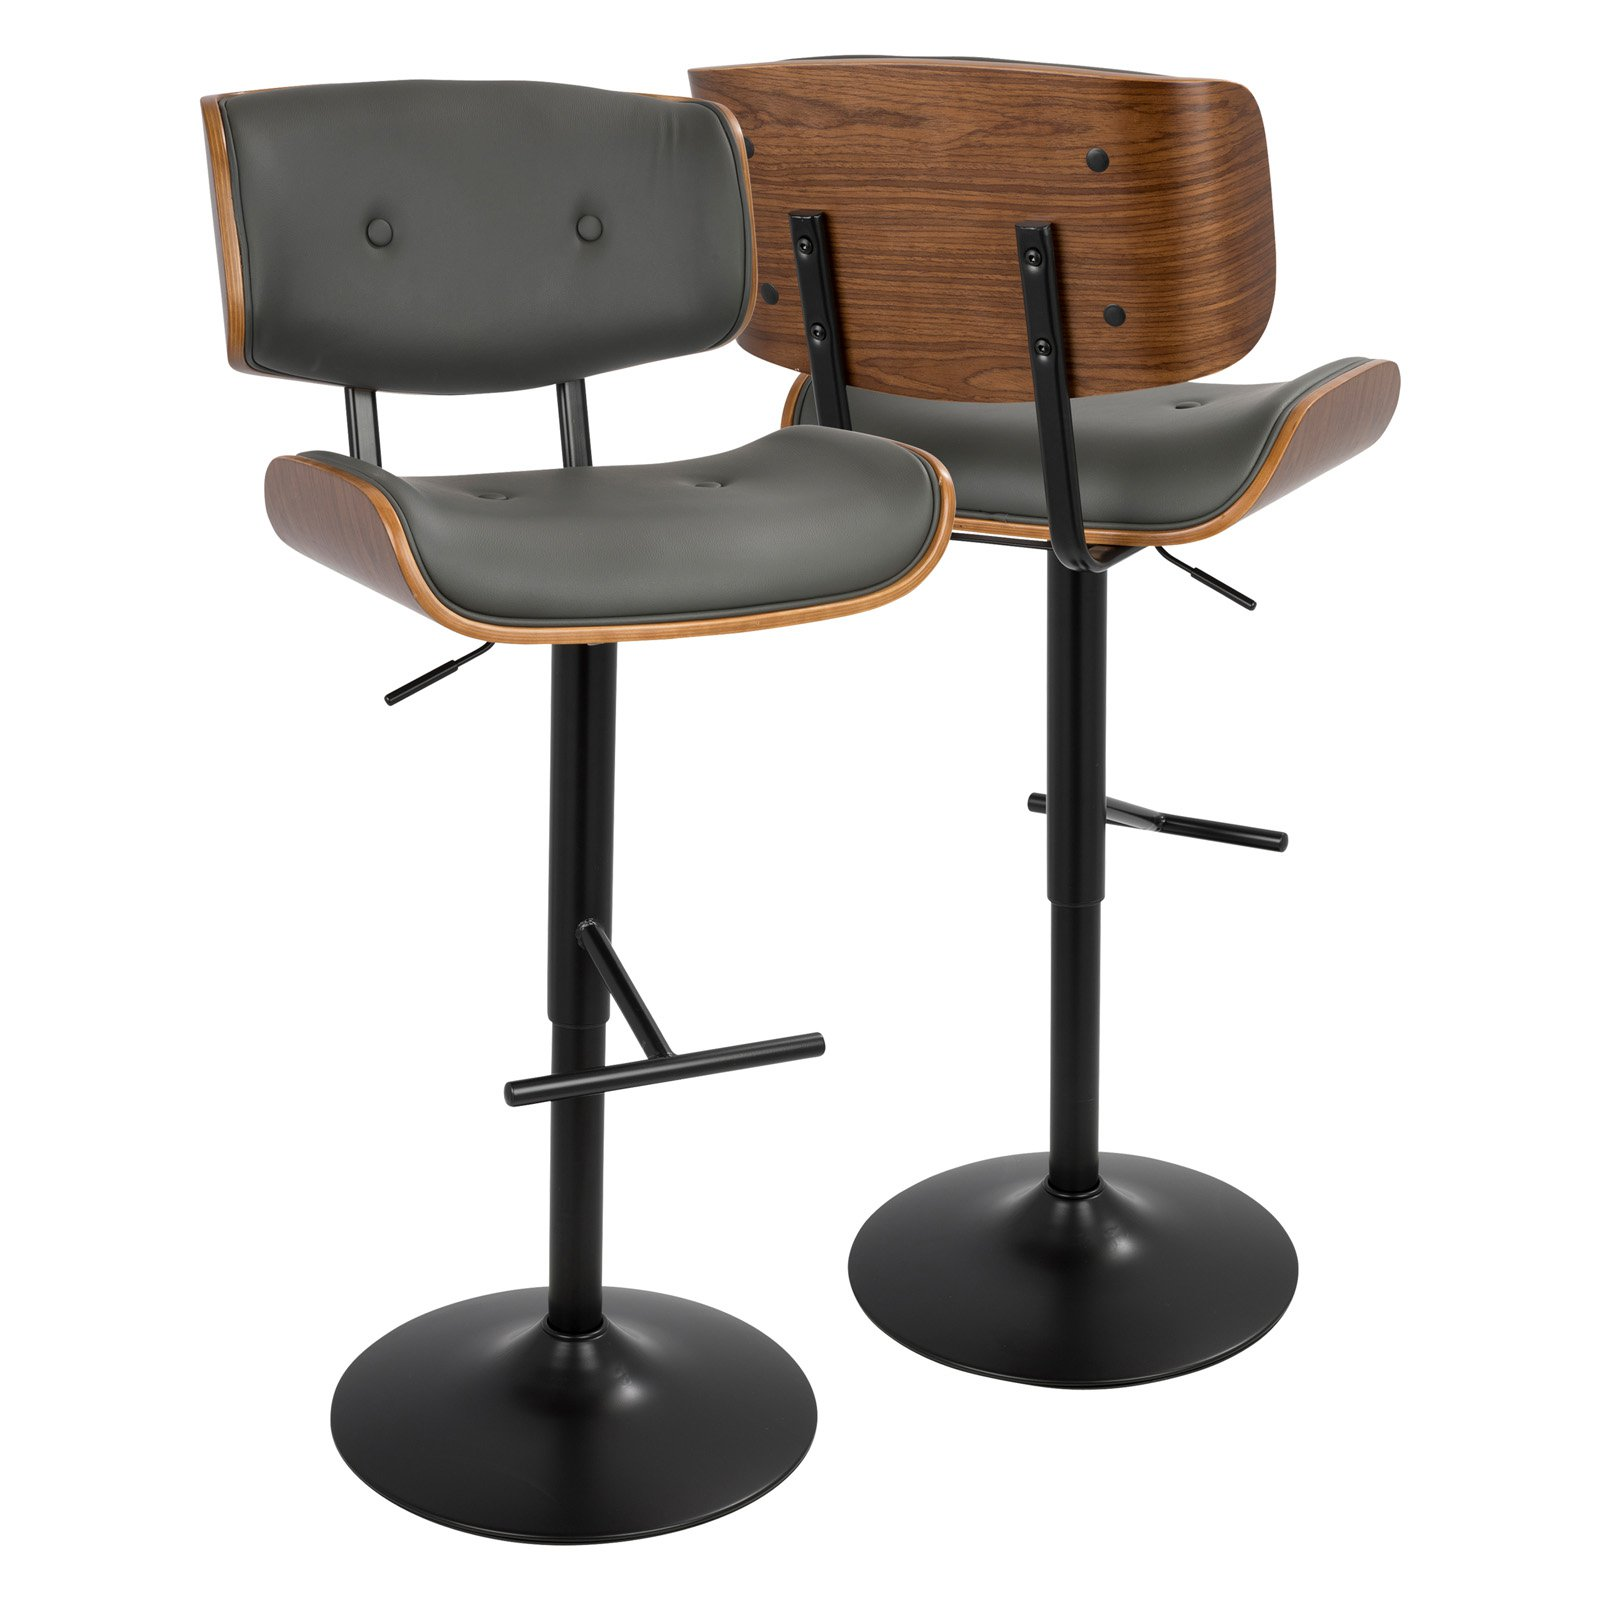 LumiSource Lombardi Barstool, Multiple Colors Available